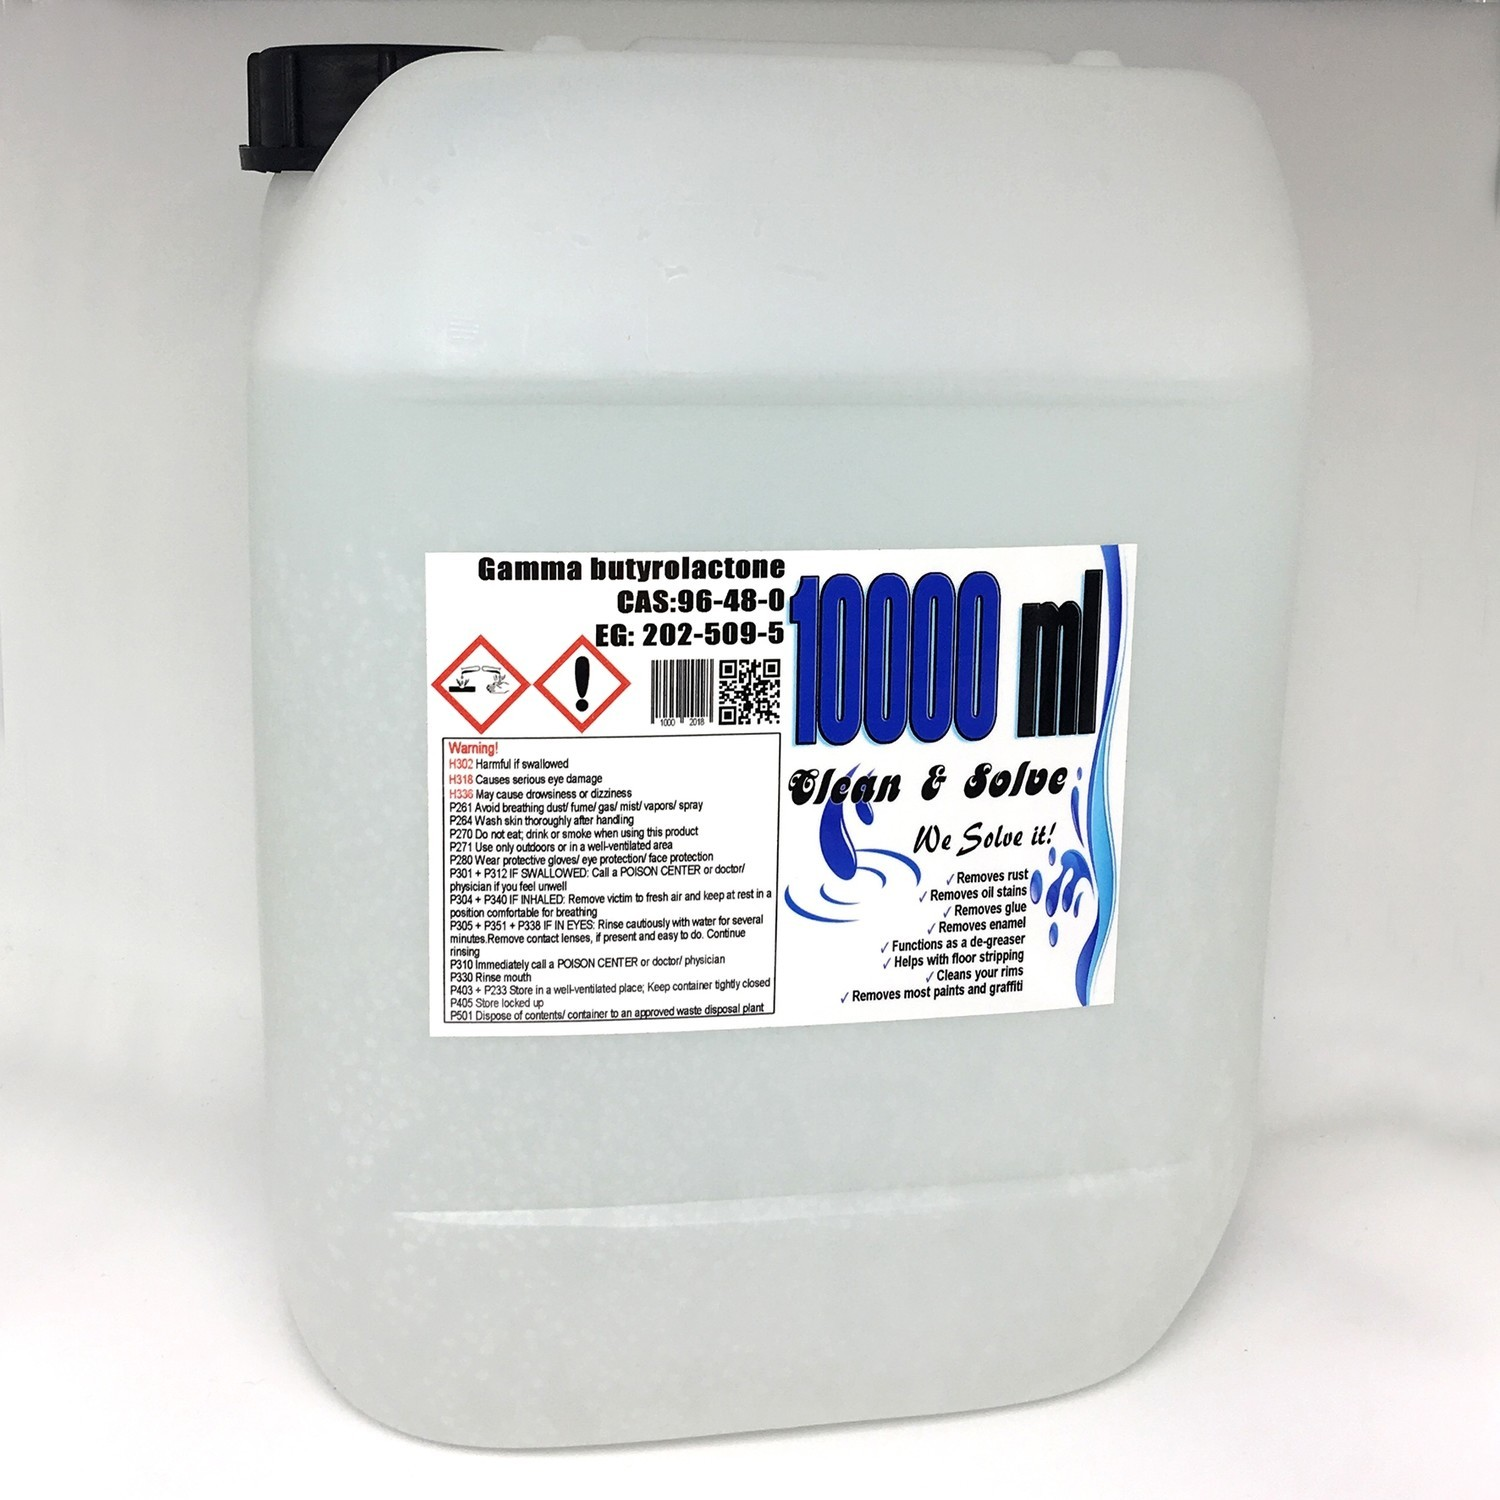 Multi Remover 10.000 ml Technical Grade Canister 00029 HS Code 29322020